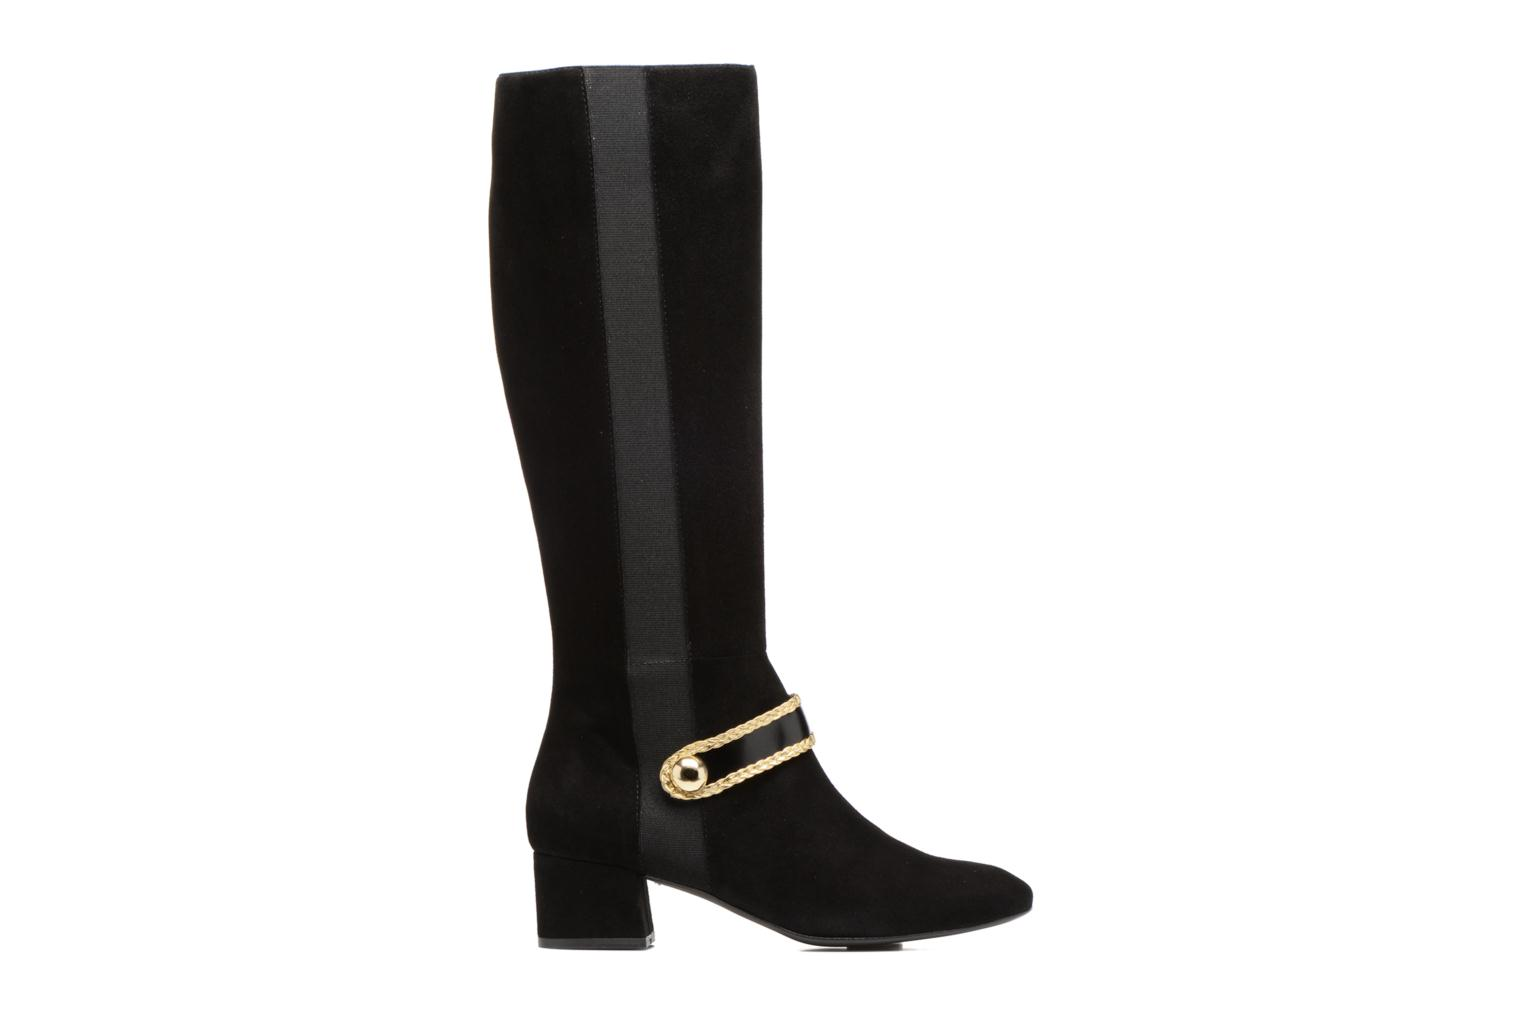 Marques Chaussure femme Made by SARENZA femme Boots Camp #5 Cuir velours marine